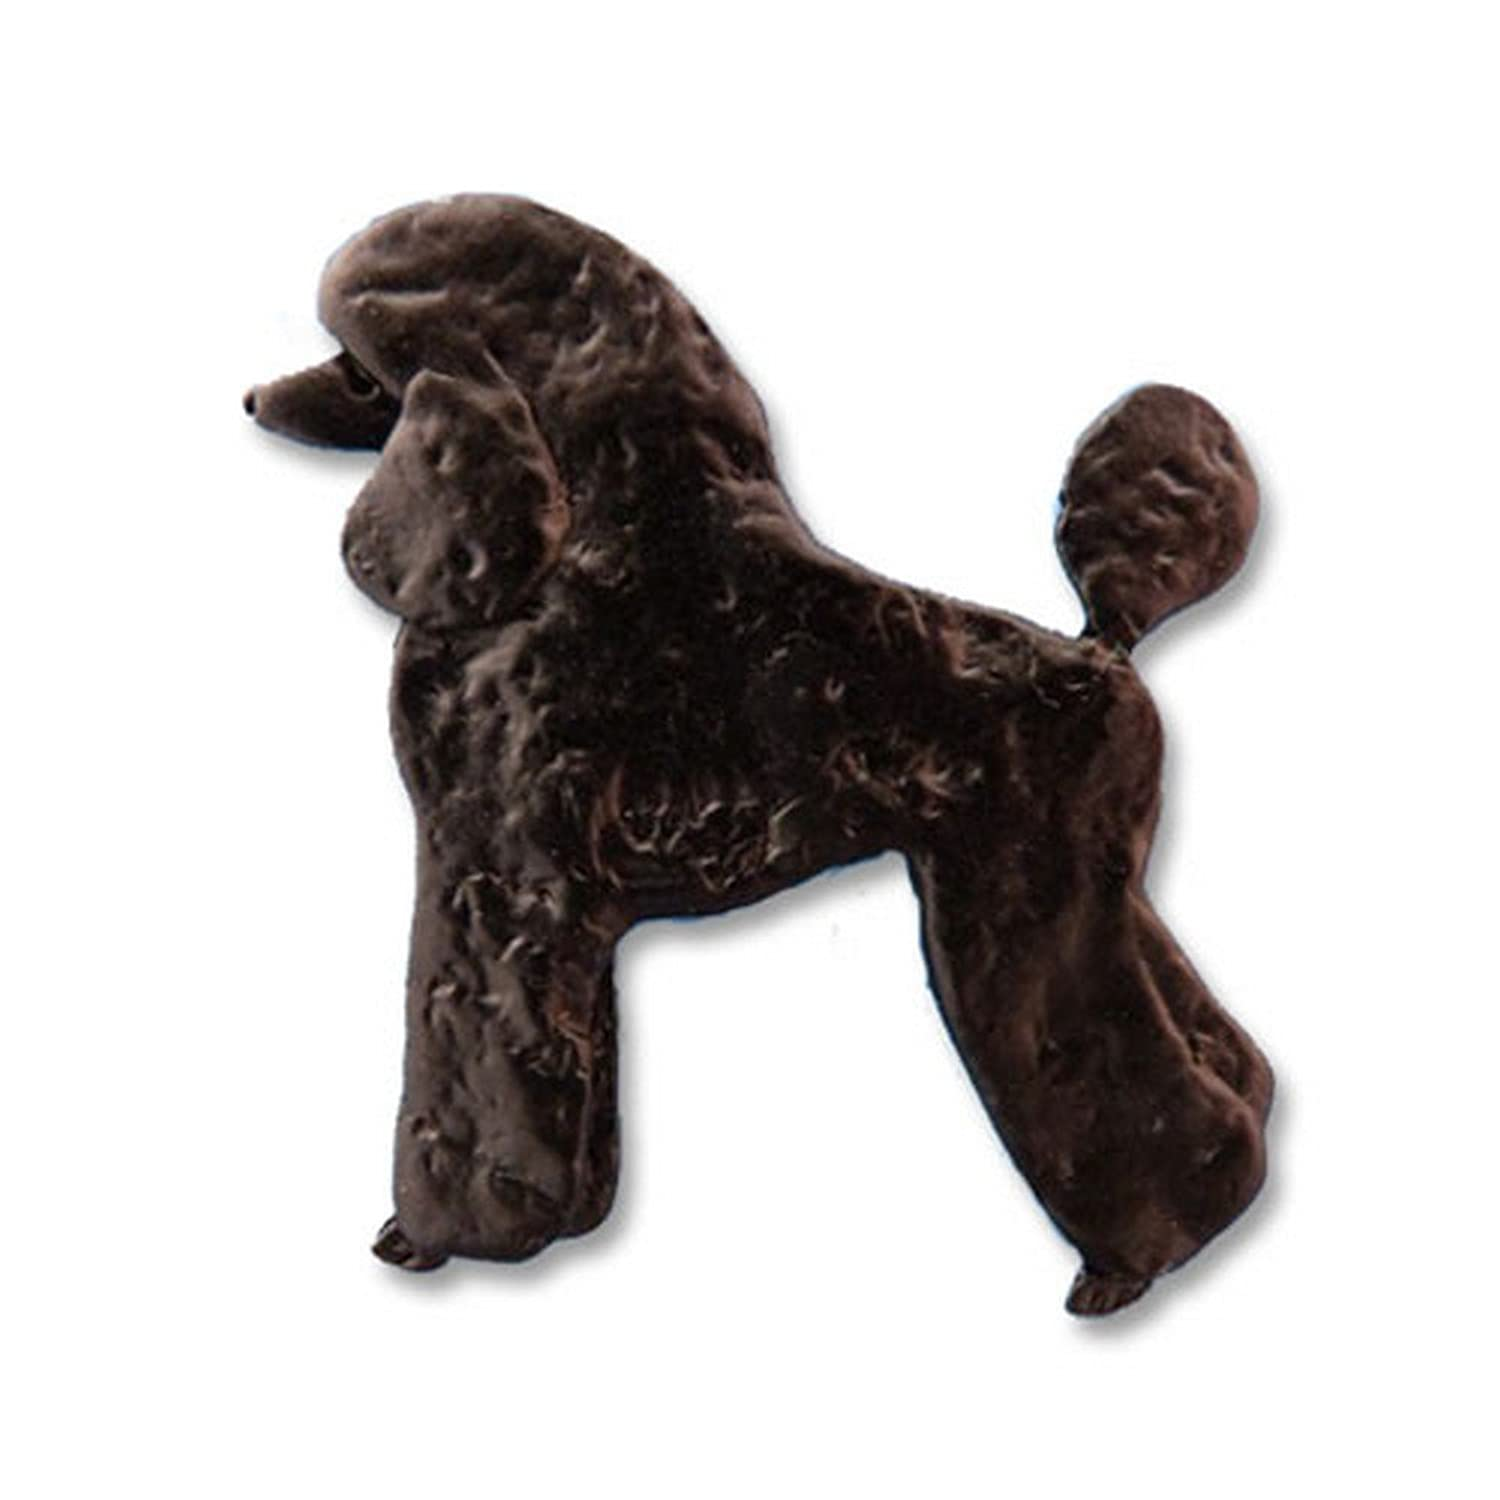 Enamel Black Poodle Pin by The Magic Zoo